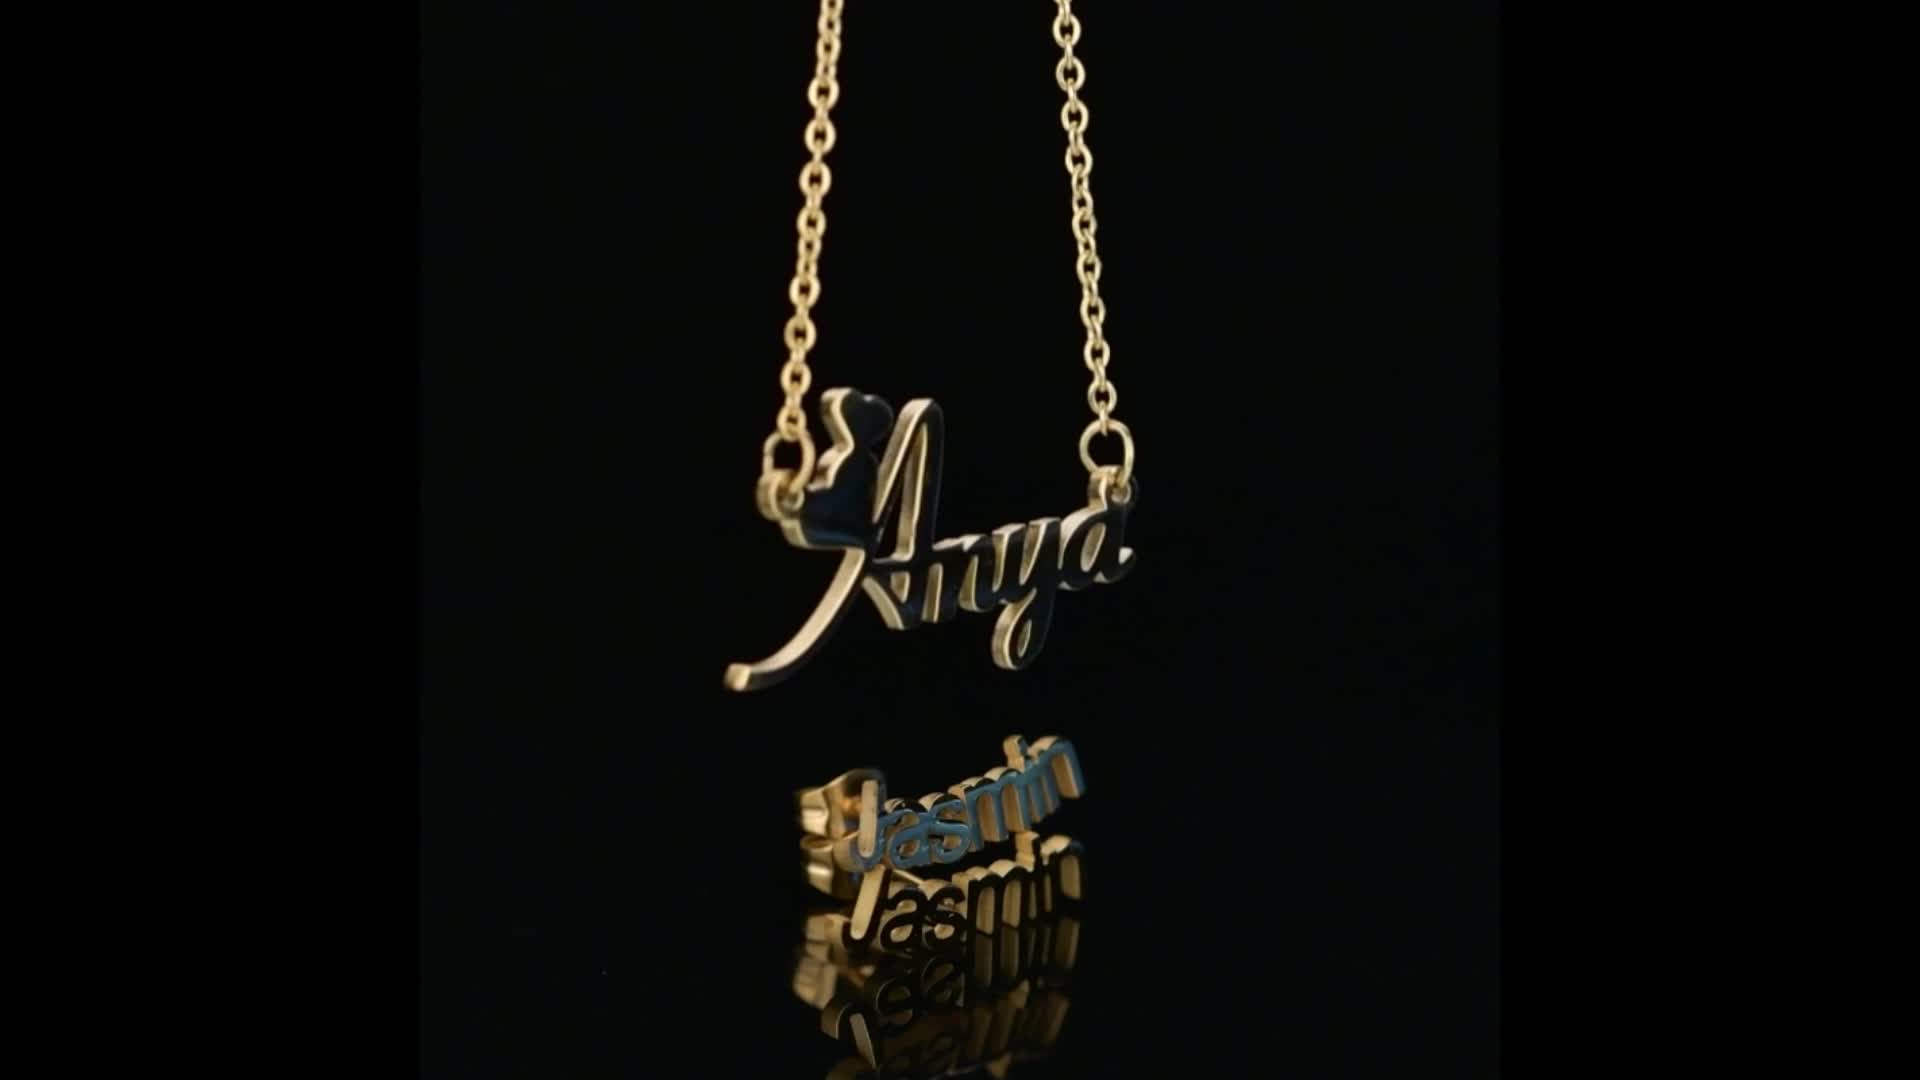 Modalen Gold Plated Letter Pendant Custom Dainty Personalized Name Necklace